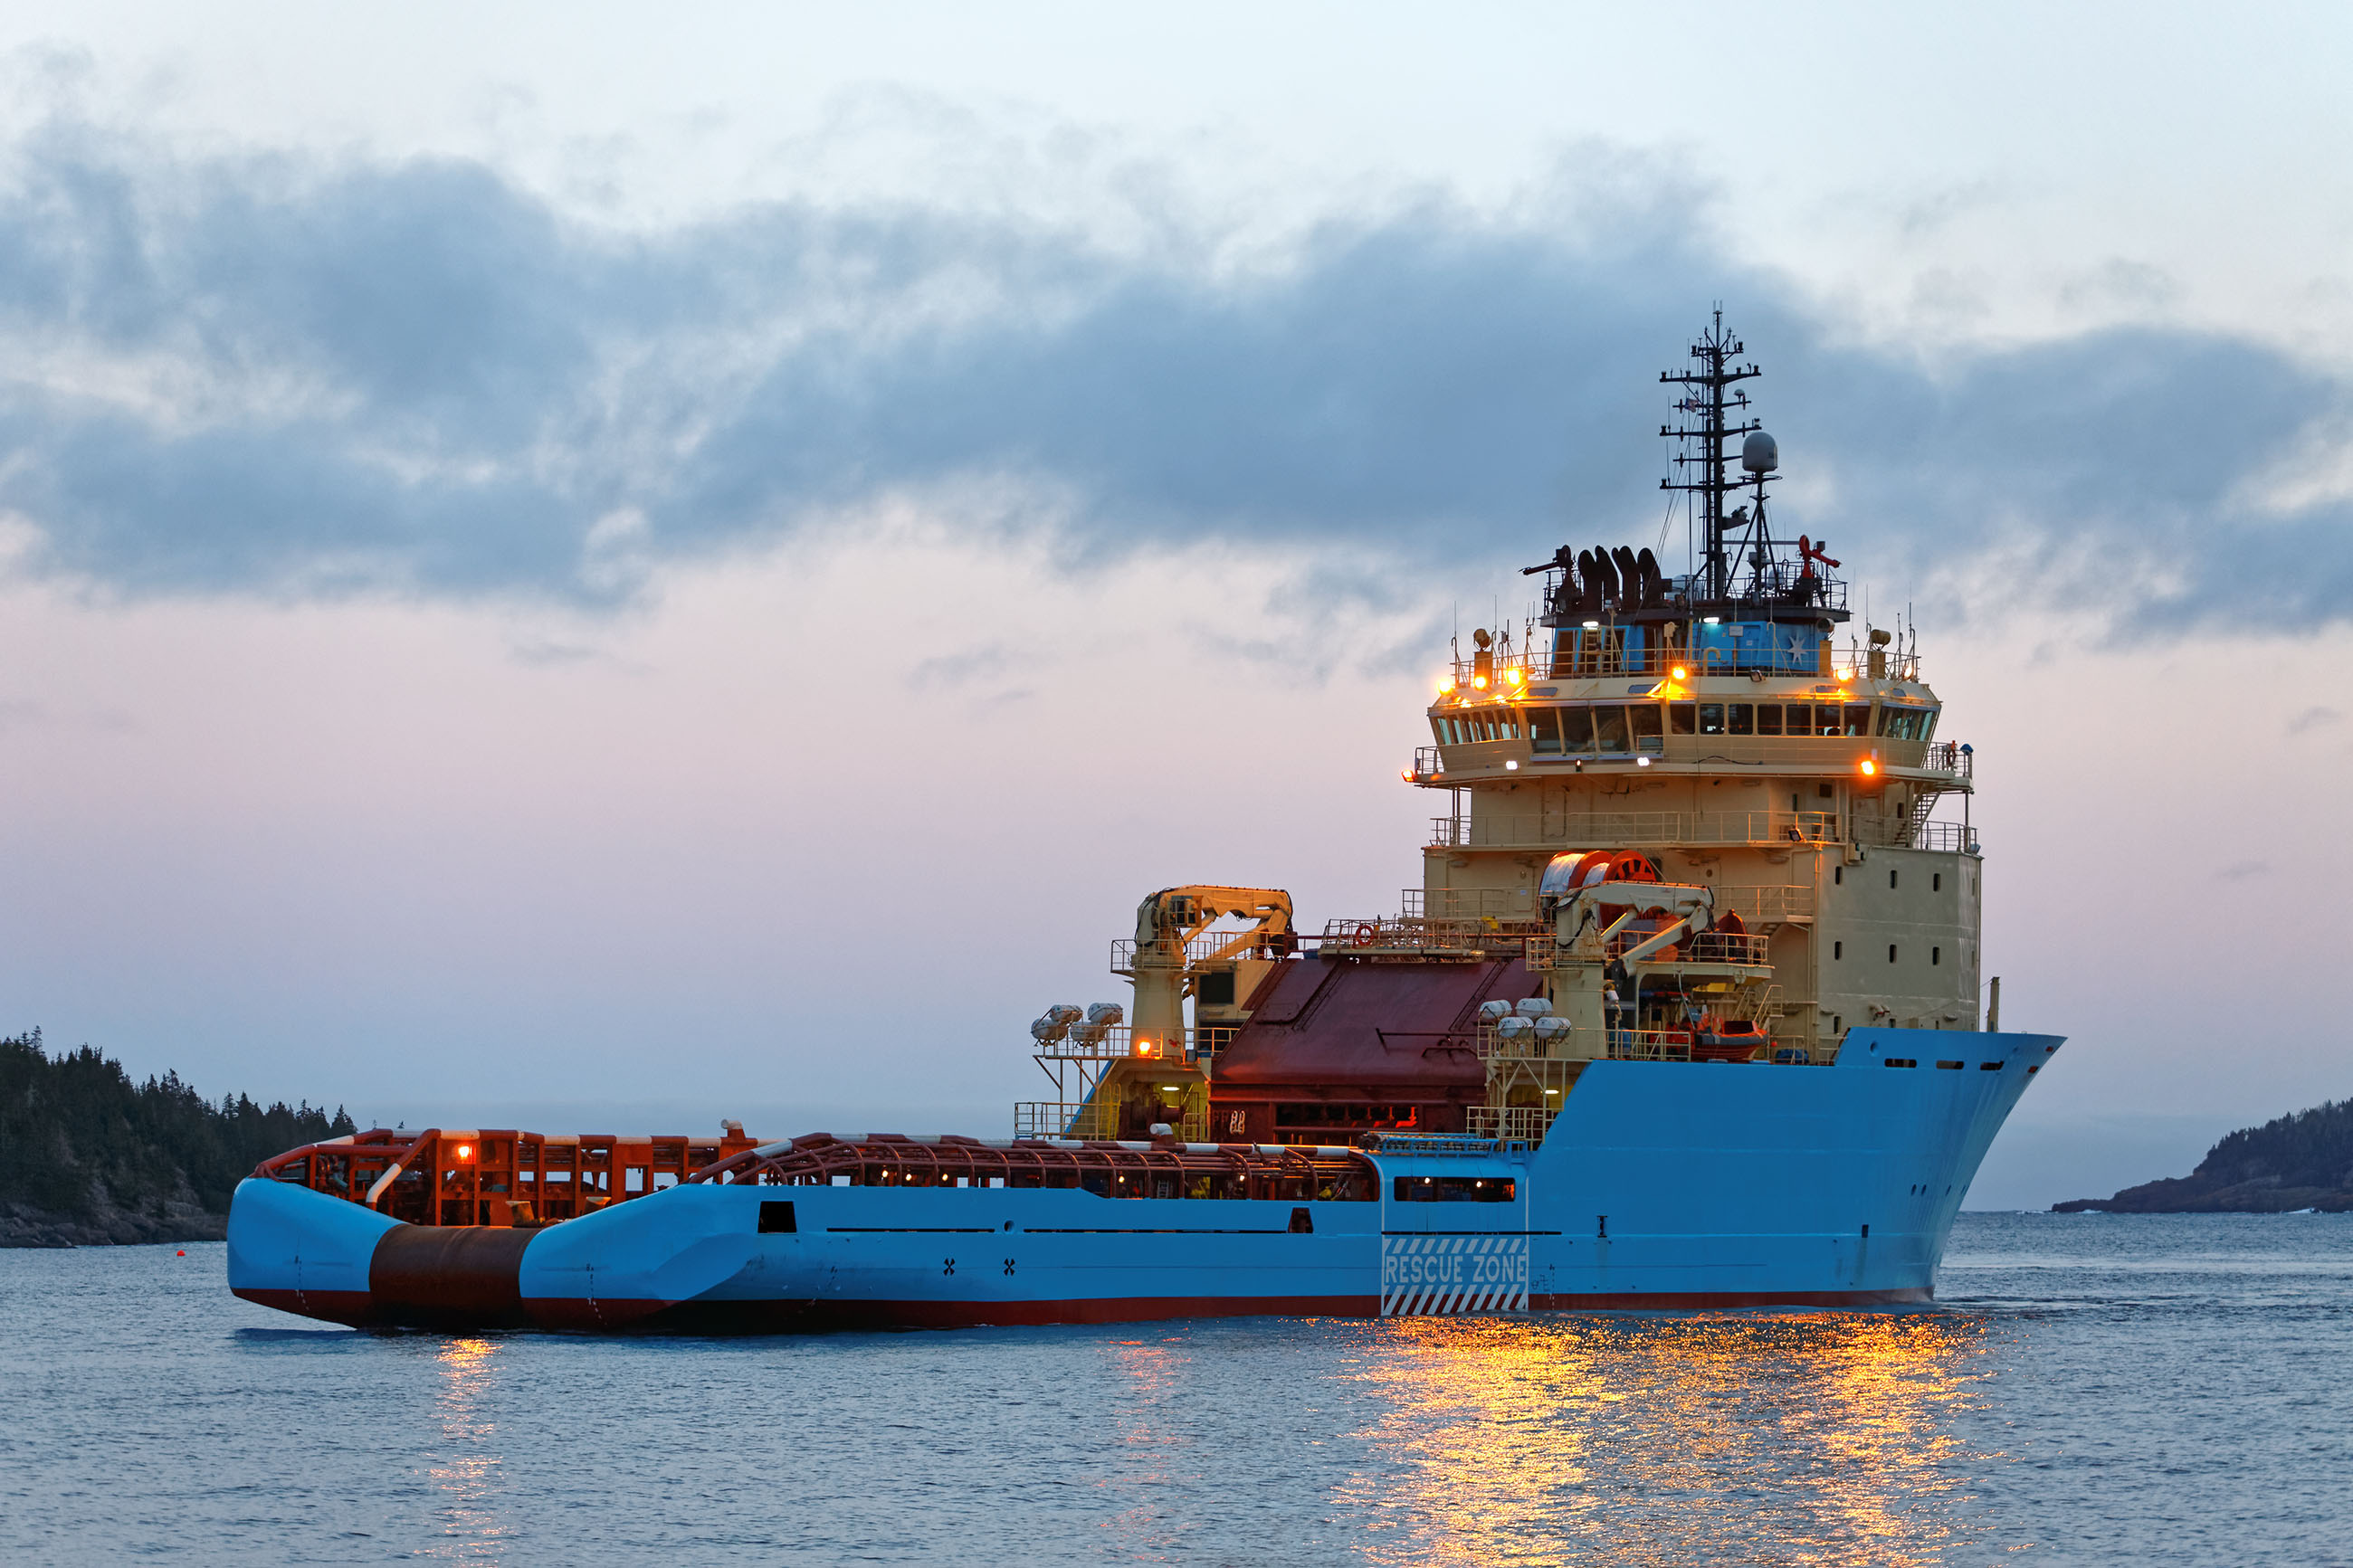 Offshore supply vessel, Black, Petroleum, Water, Underway, HQ Photo